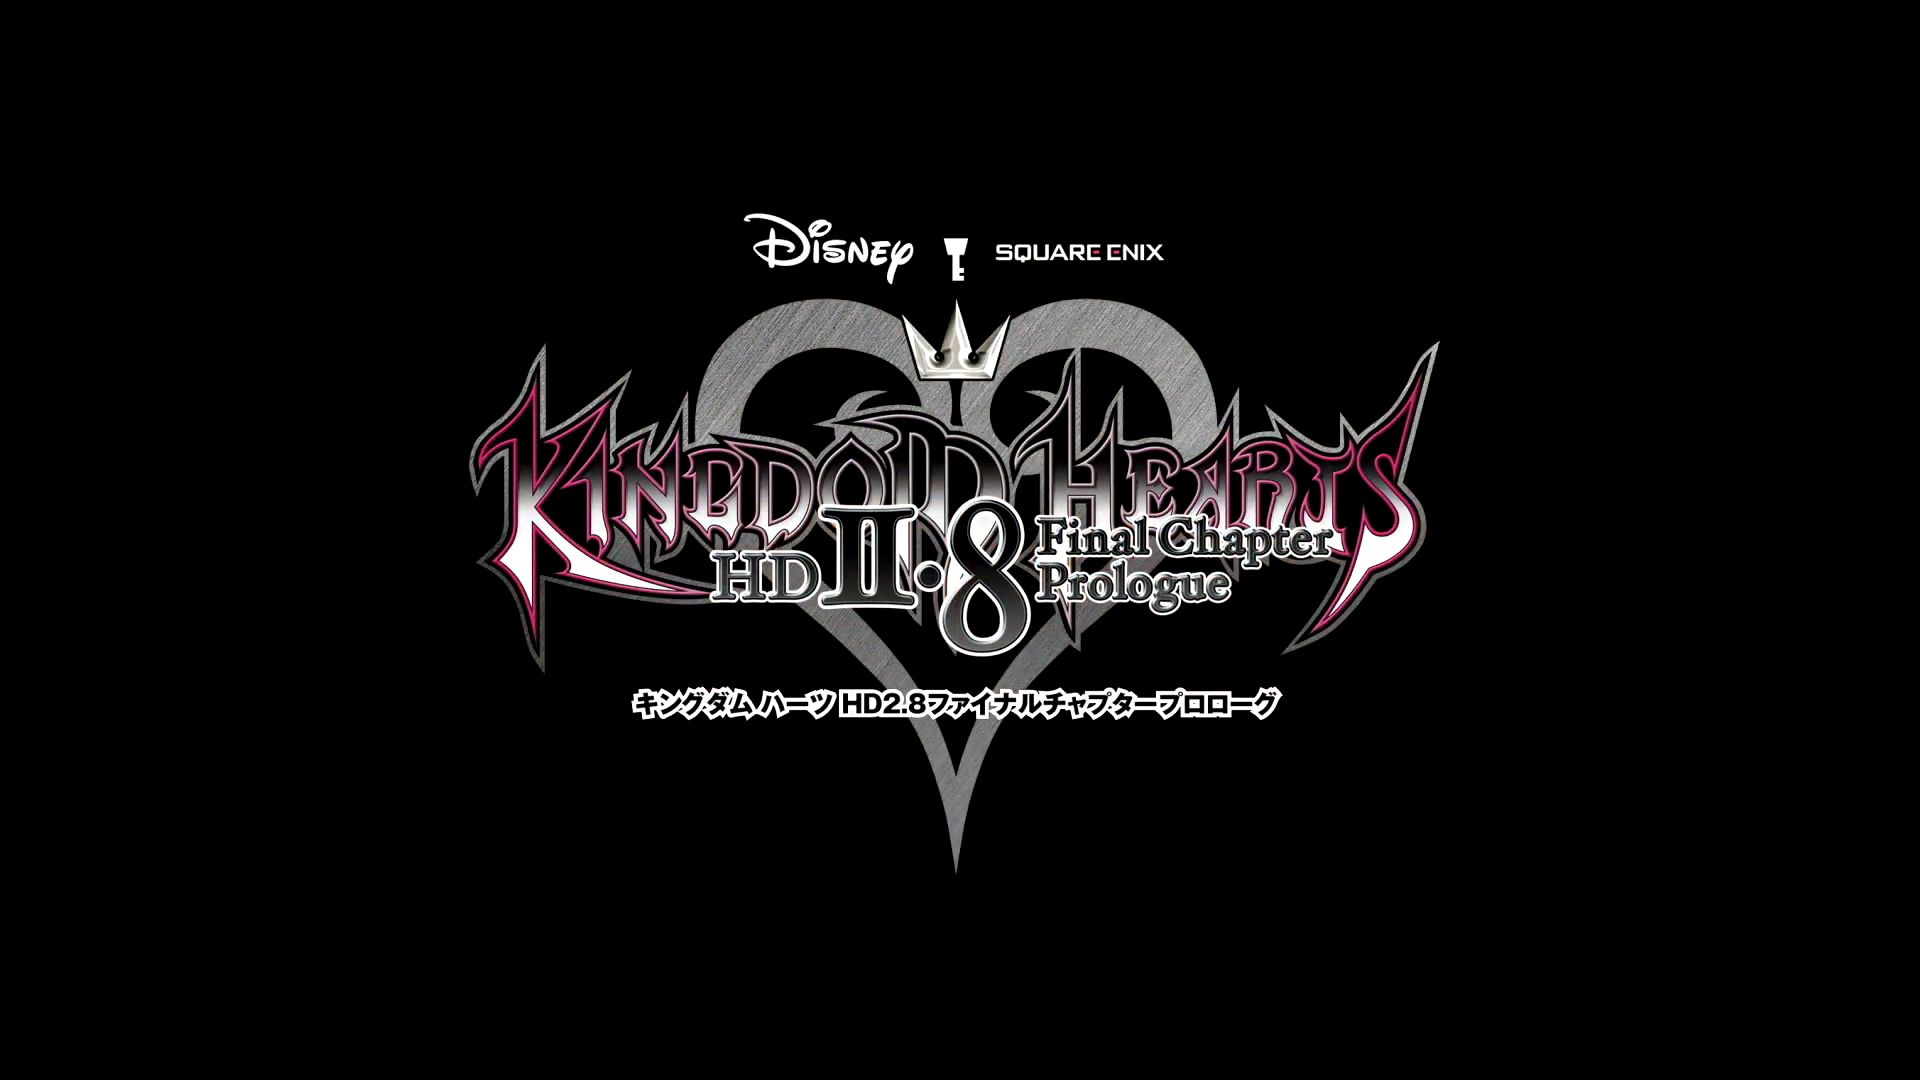 Kingdom Hearts HD 2.8 Final Chapter Prologue Announced for PS4  Square Enix continues to port entries of its Kingdom Hearts series to main consoles to prepare the world for its upcoming conclusion.  http://www.thegamefanatics.com/2015/09/kingdom-hearts-hd-2-8-final-chapter-prologue-announced-ps4/ ---- The Game Fanatics is a completely independent, US based video game blog, bringing you the best in geek culture and the hottest gaming news. Your support of us, via a reblog,